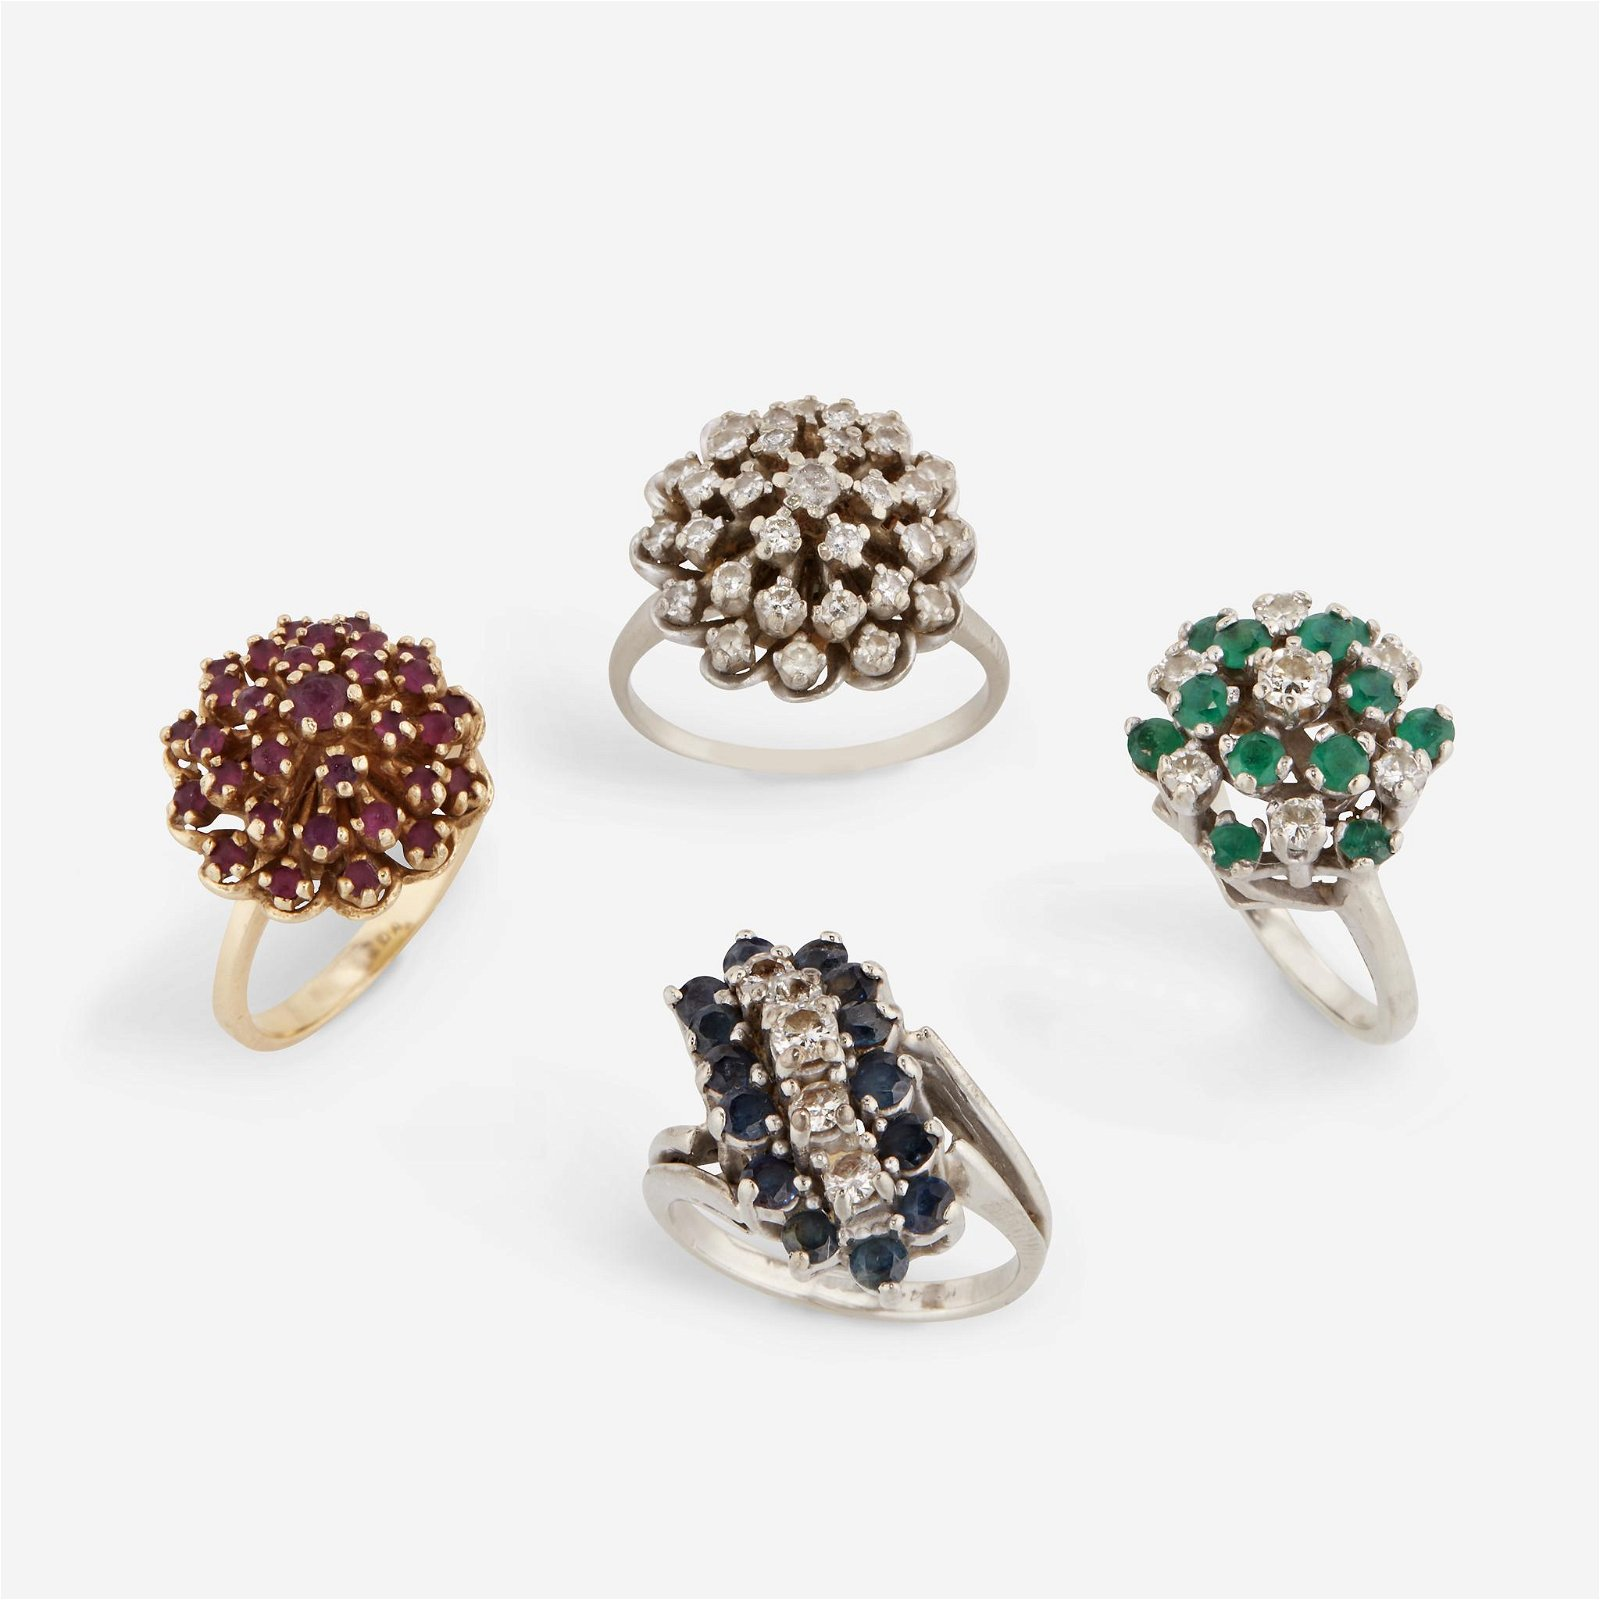 A group of four gem-set rings,